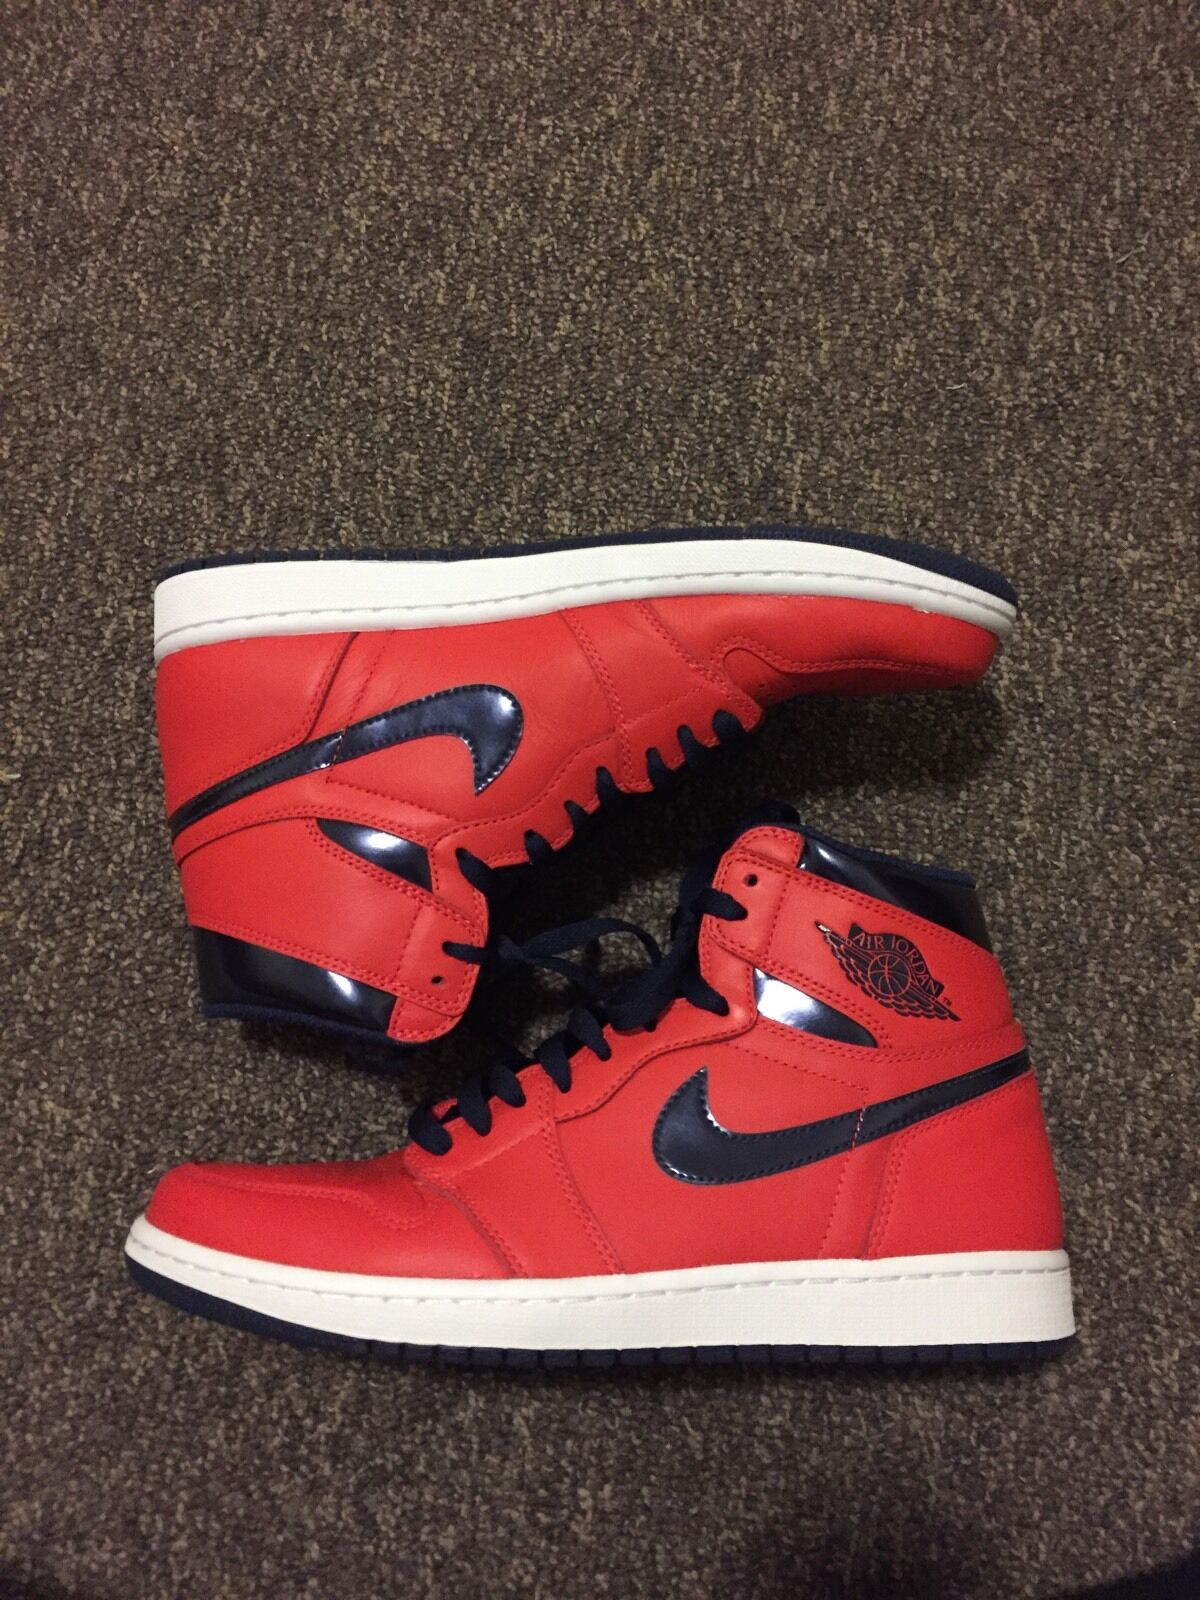 Nike Air Jordan 1 Letterman Sz 10